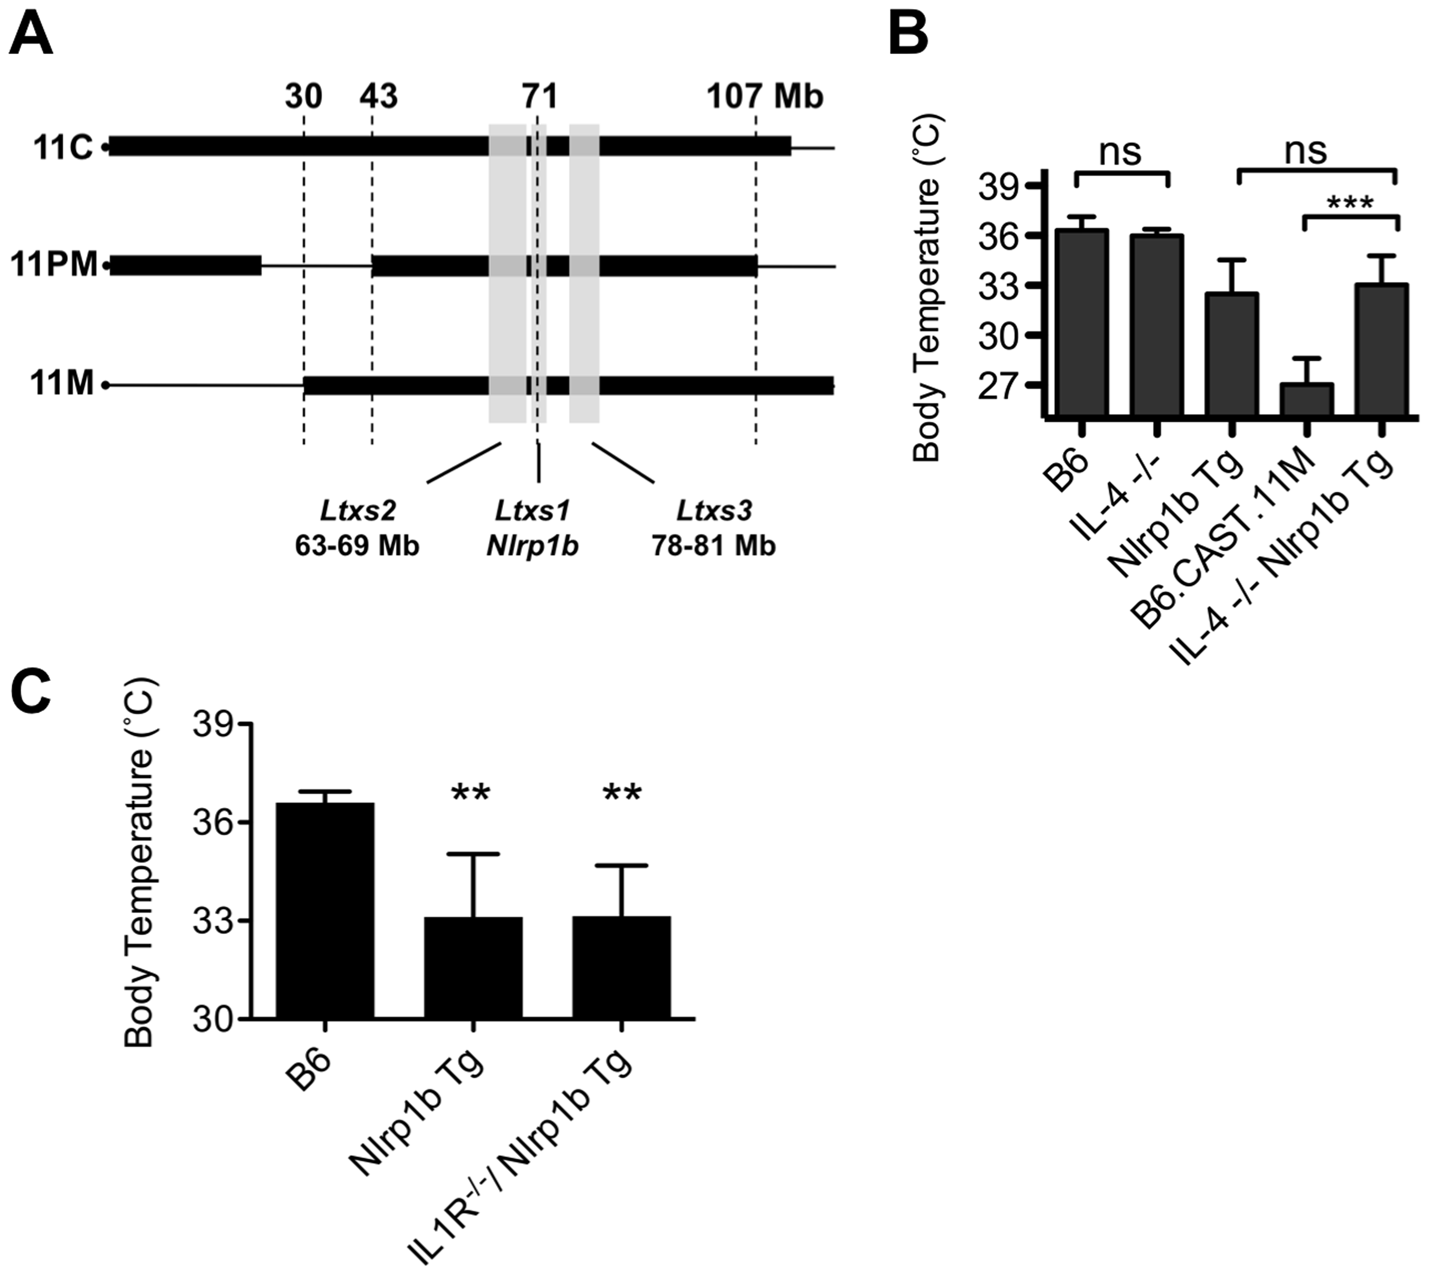 The role of IL-4 in the Nlrp1b-mediated response to LT.